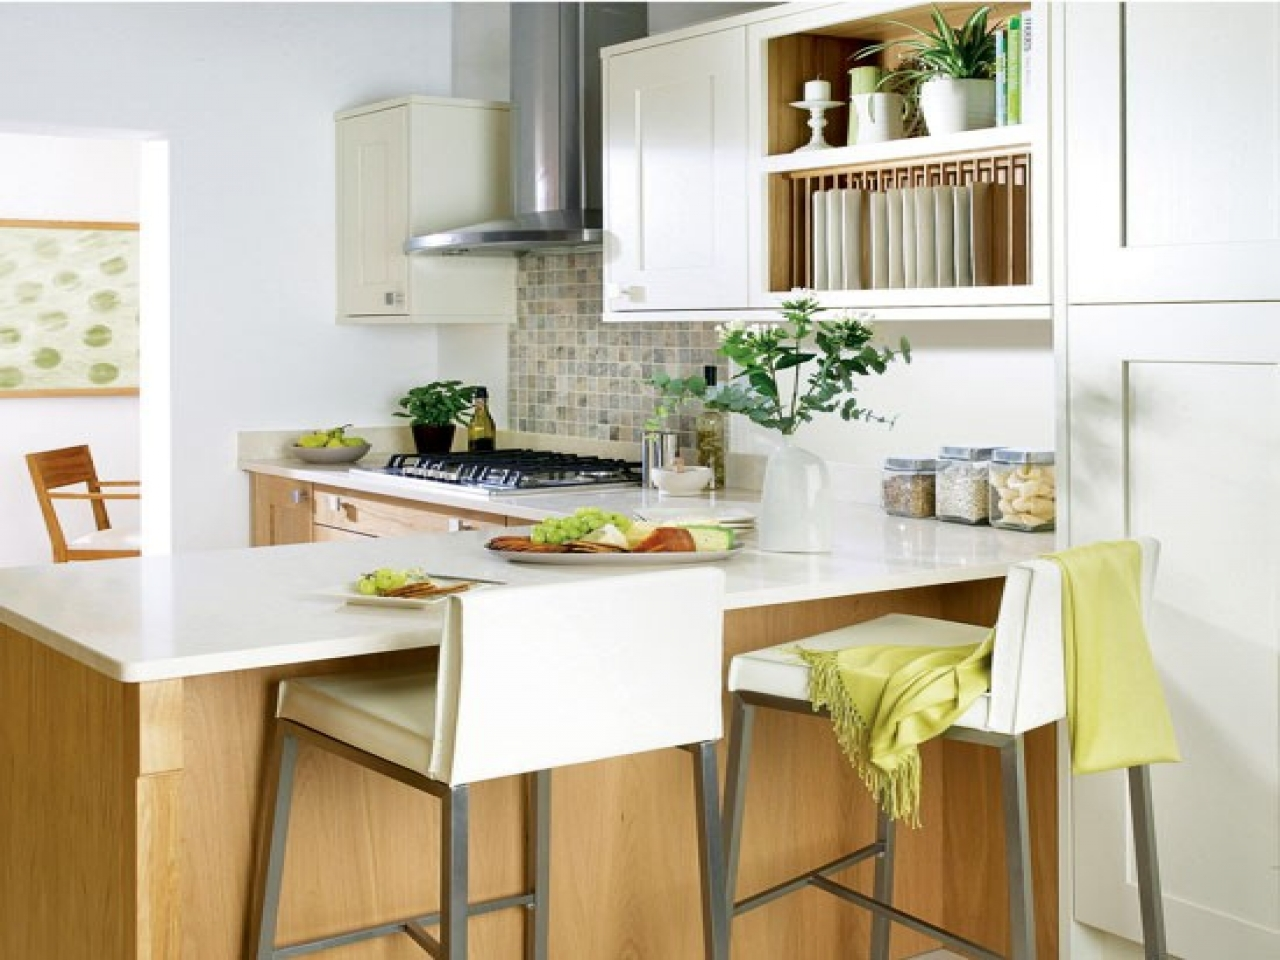 small-kitchen-with-breakfast-bar-kitchen-breakfast-bar-stools-b86dc7b30a262bf0